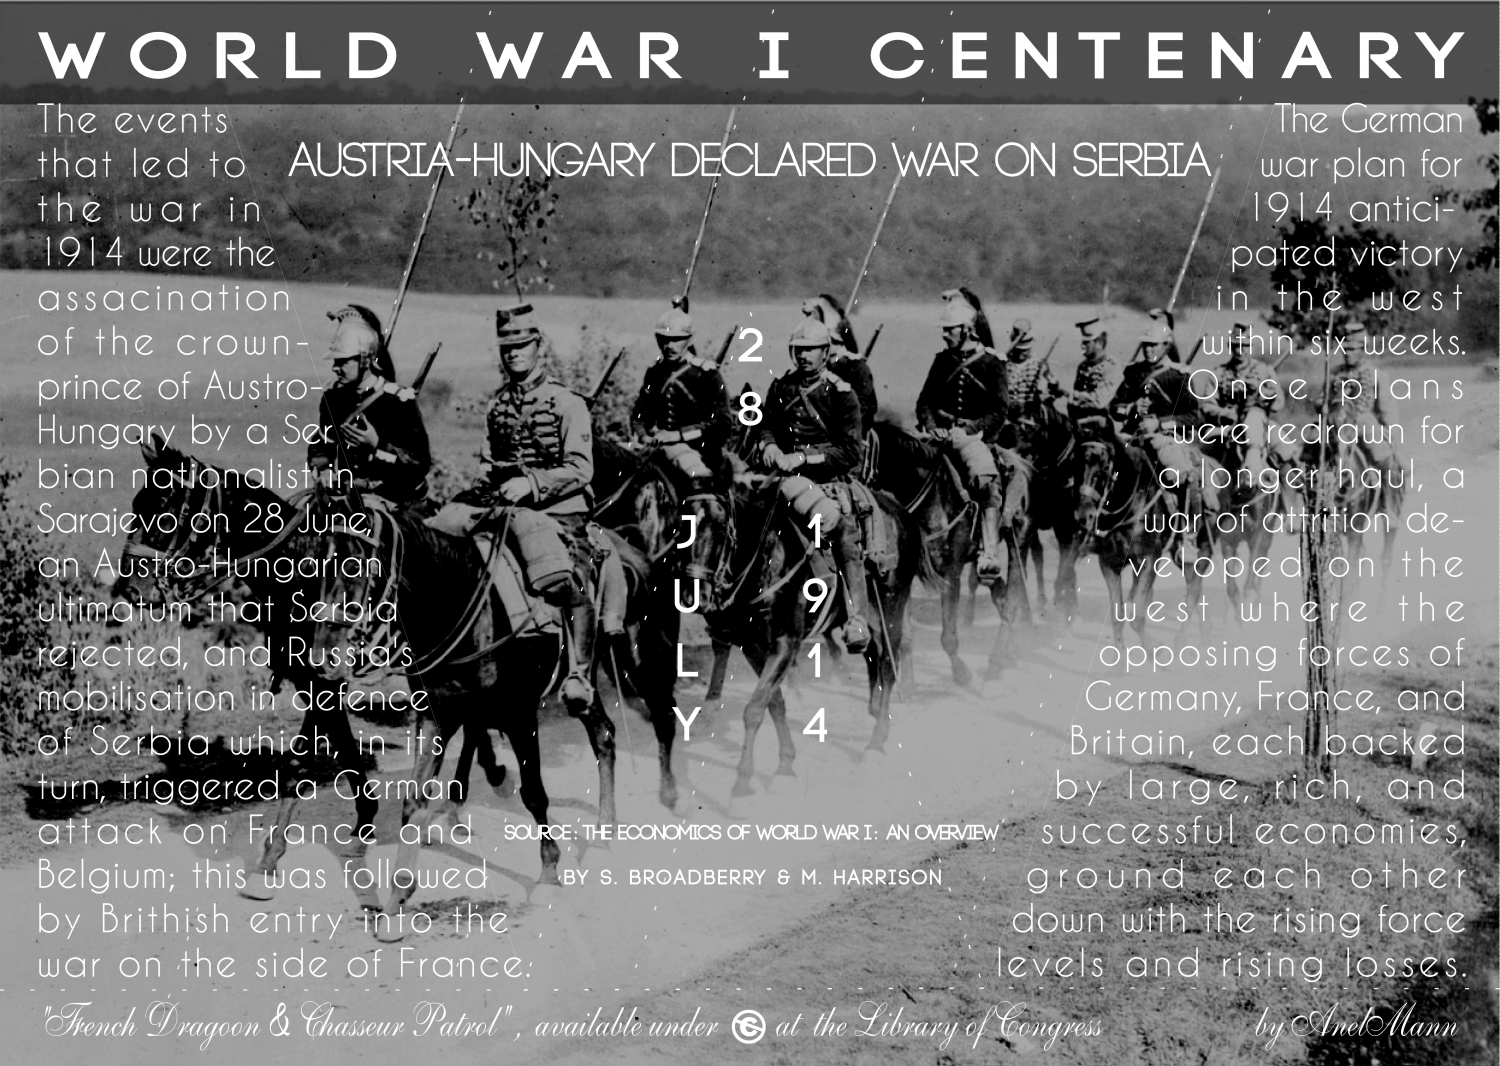 World War I Centenary Infographic